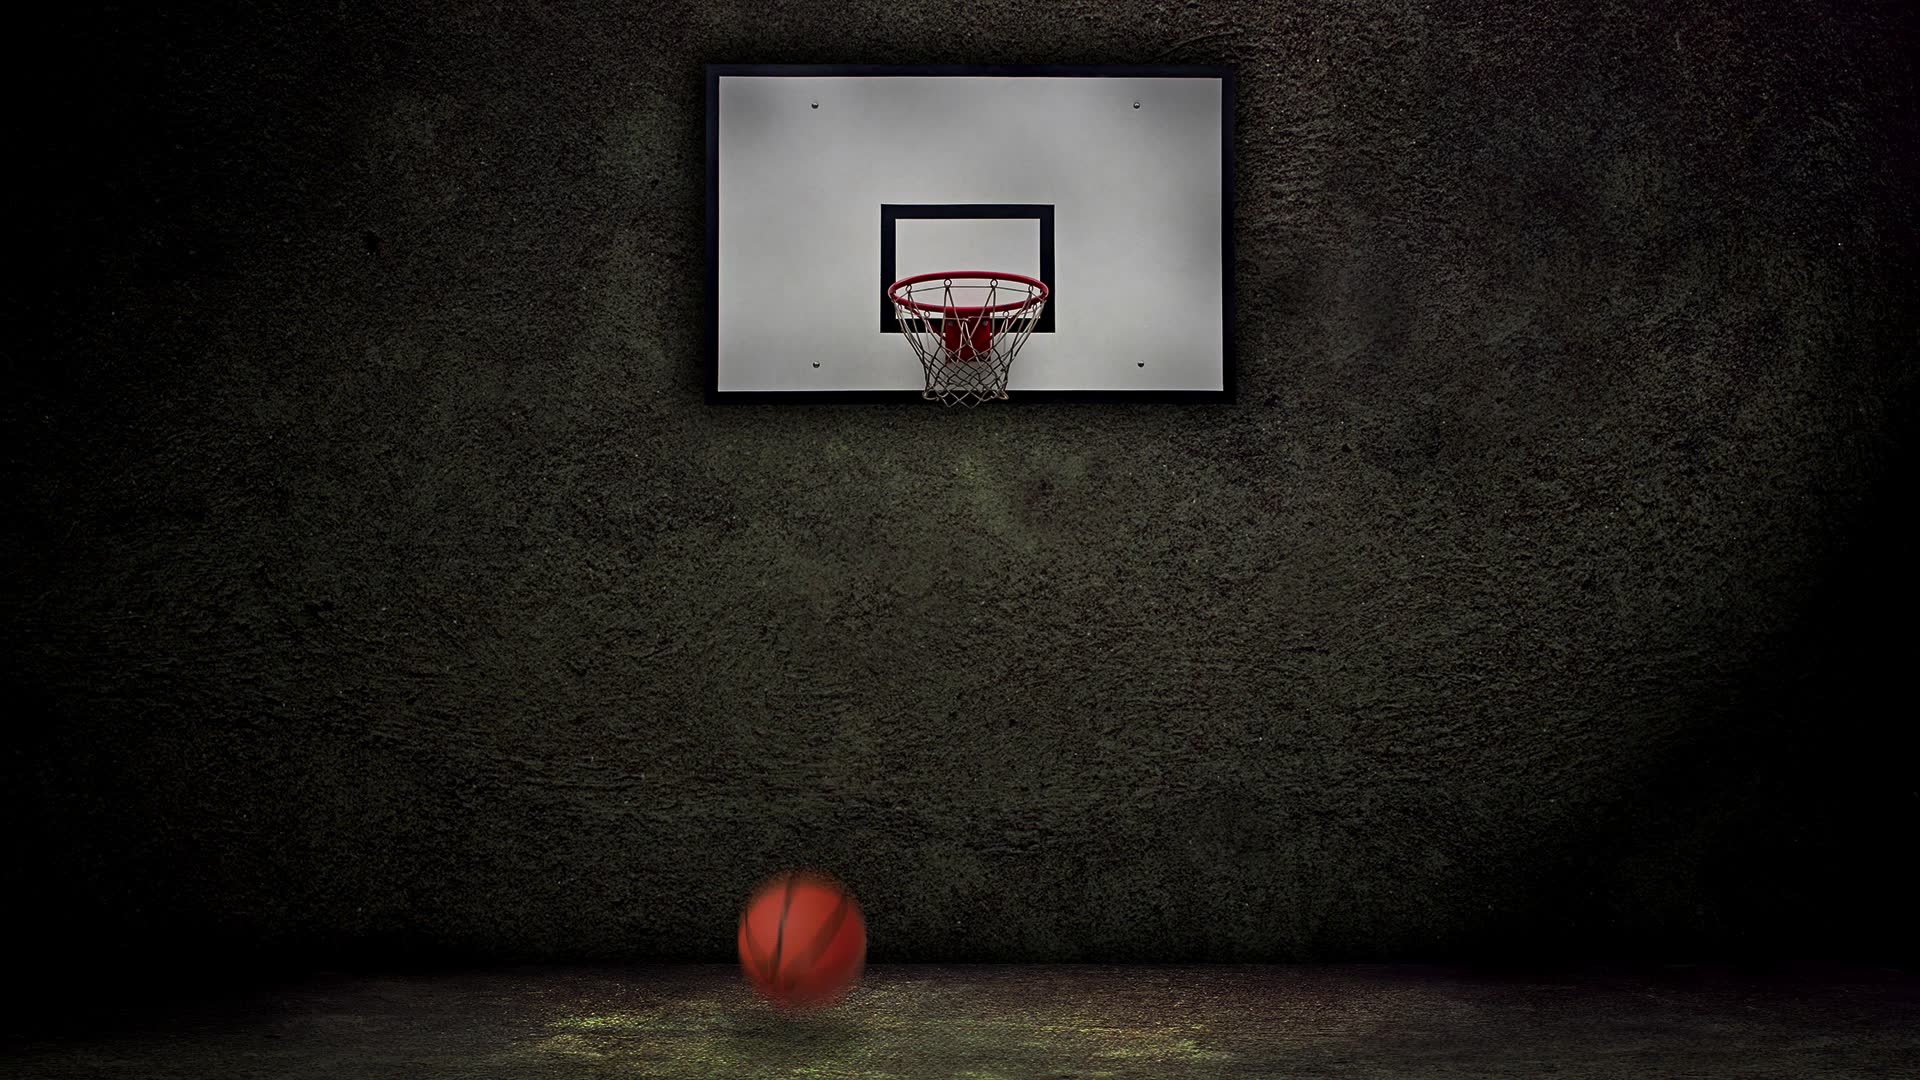 Wallpapers Hd Basketball Wallpaper Cave